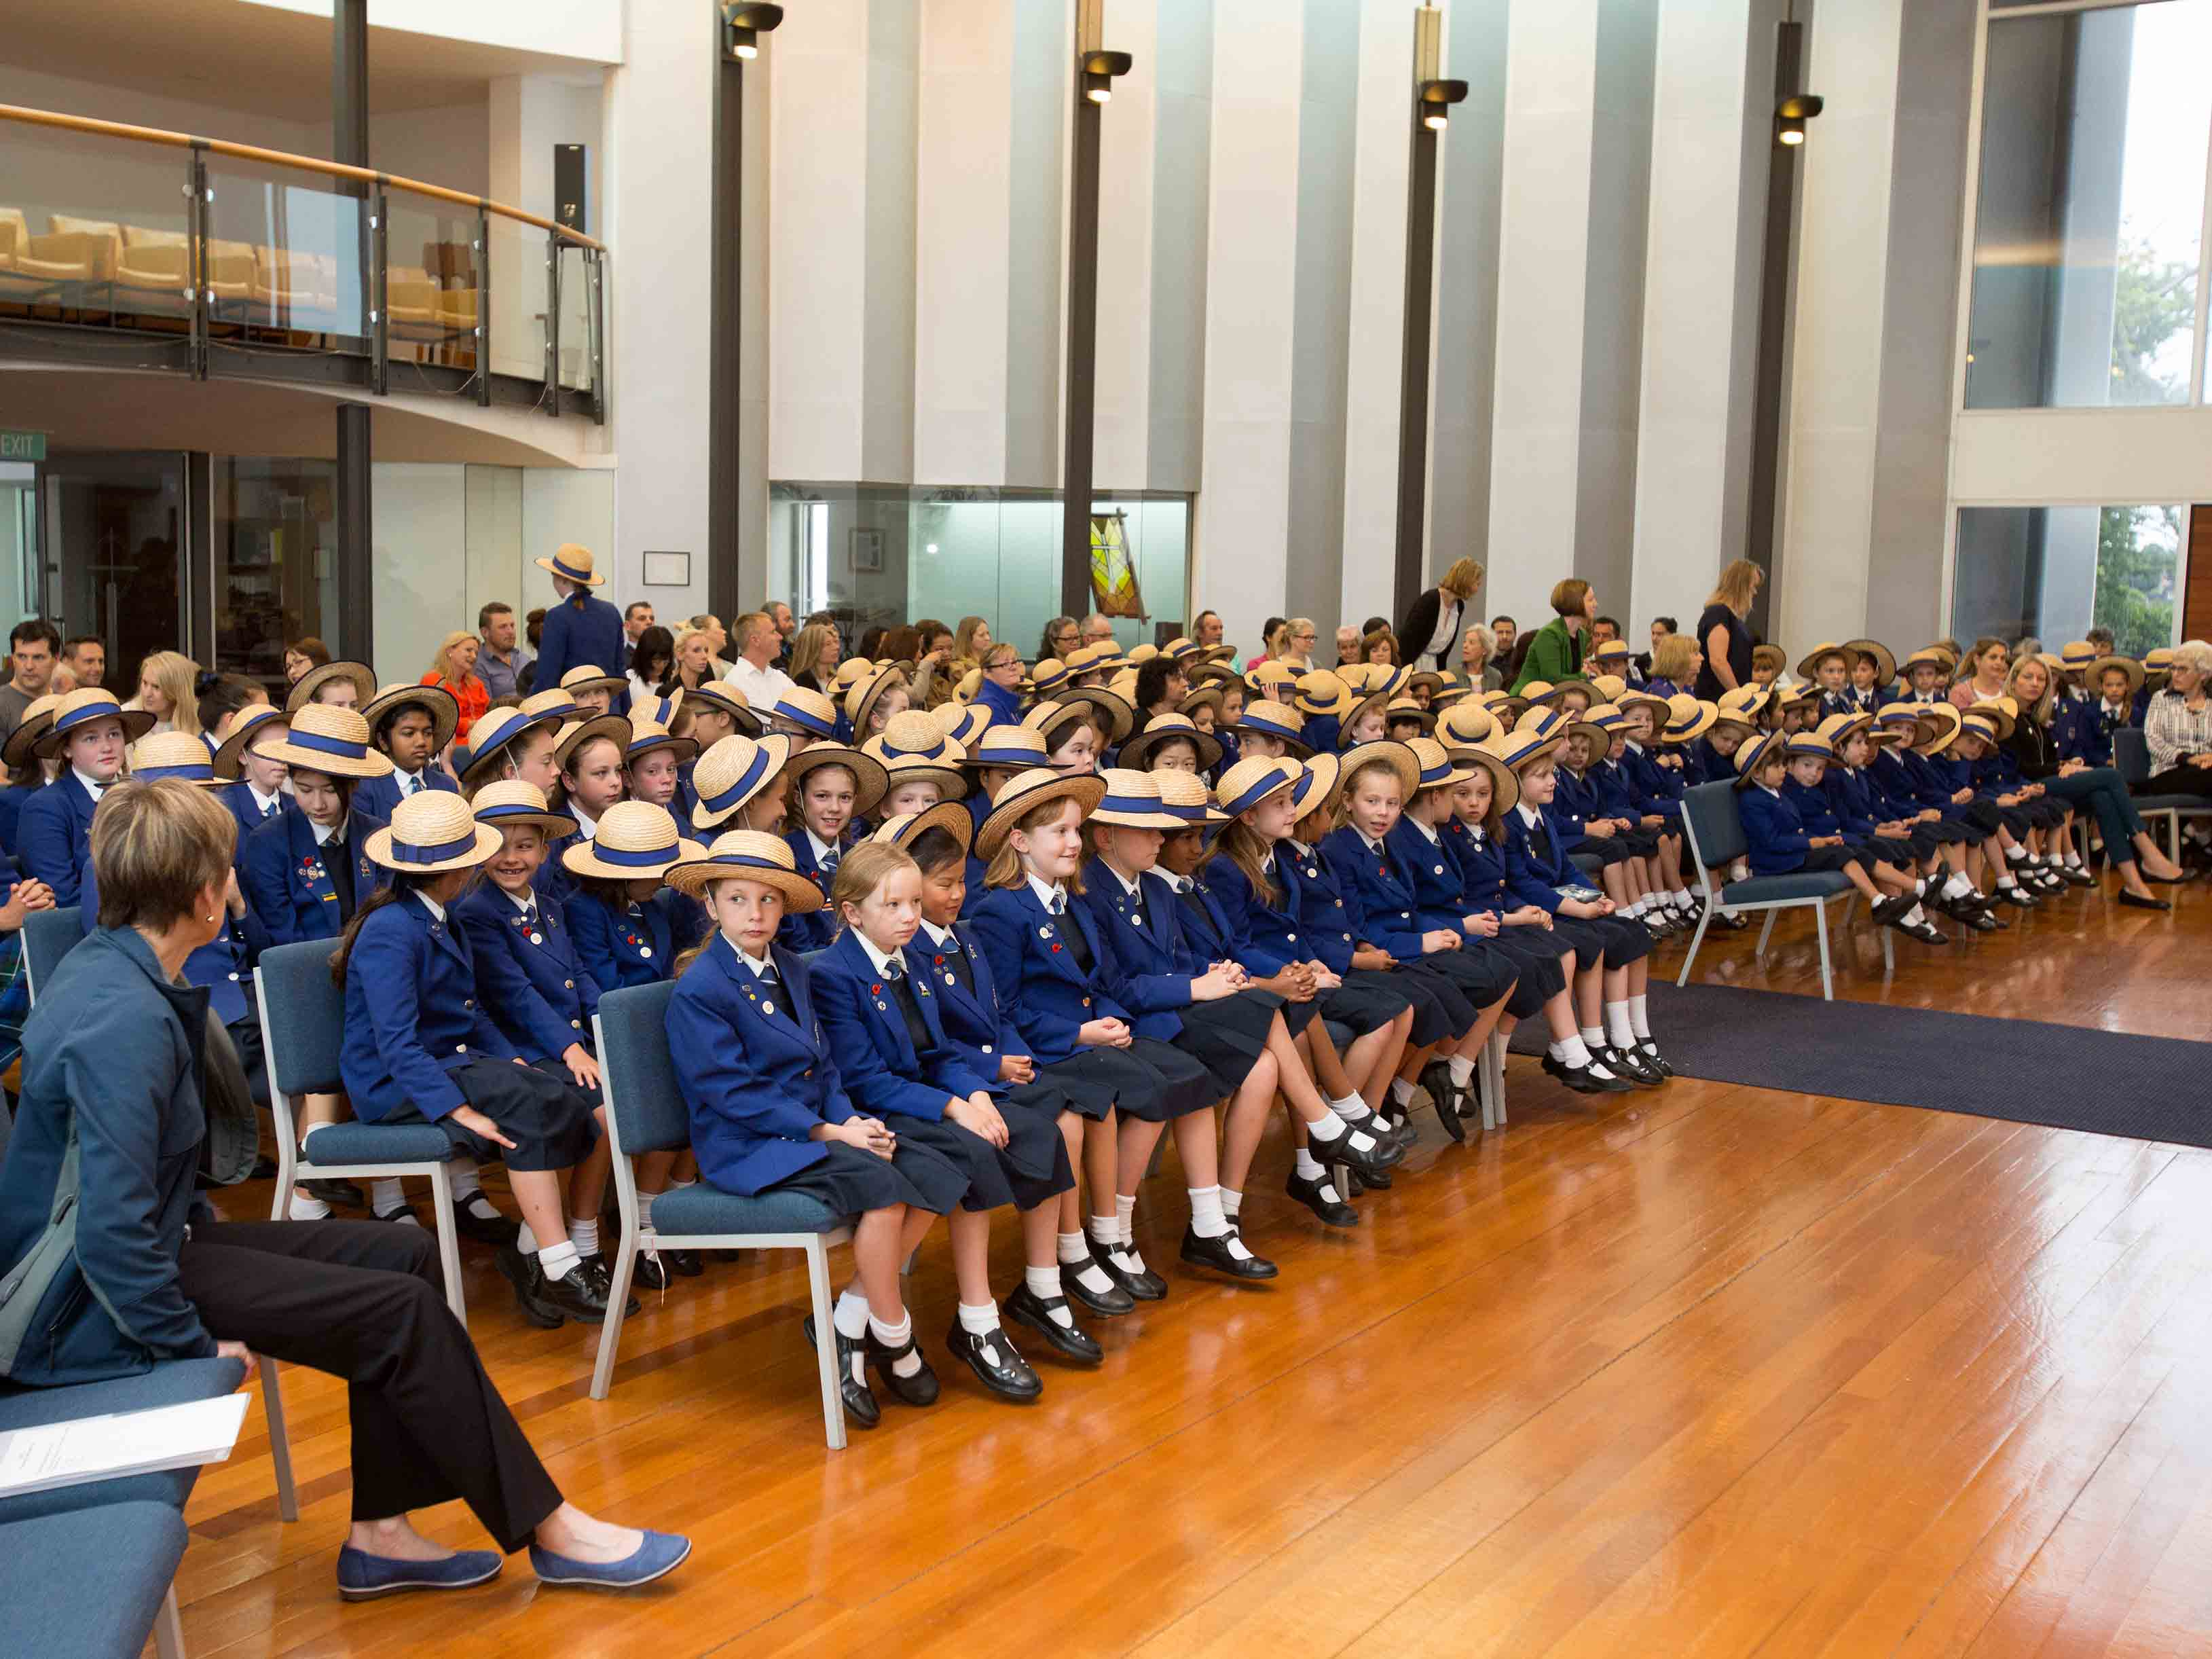 Saint-Kentigern-Girls'-School-In-Chapel.jpg